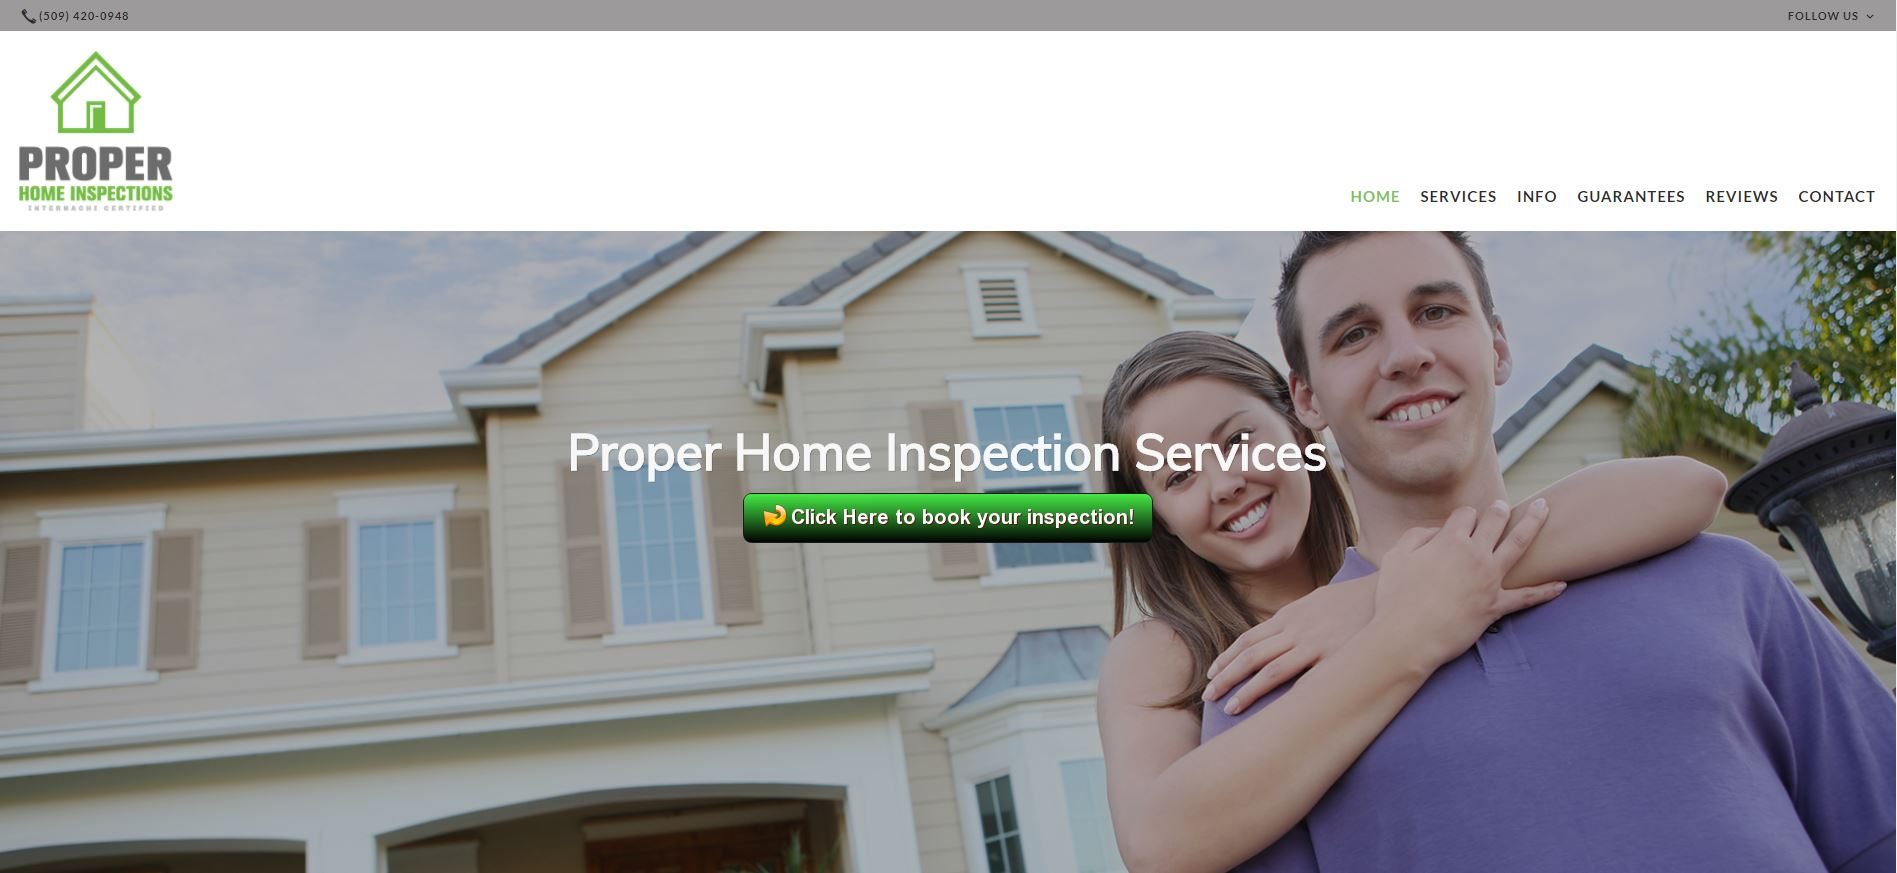 Property_Home_Inspection